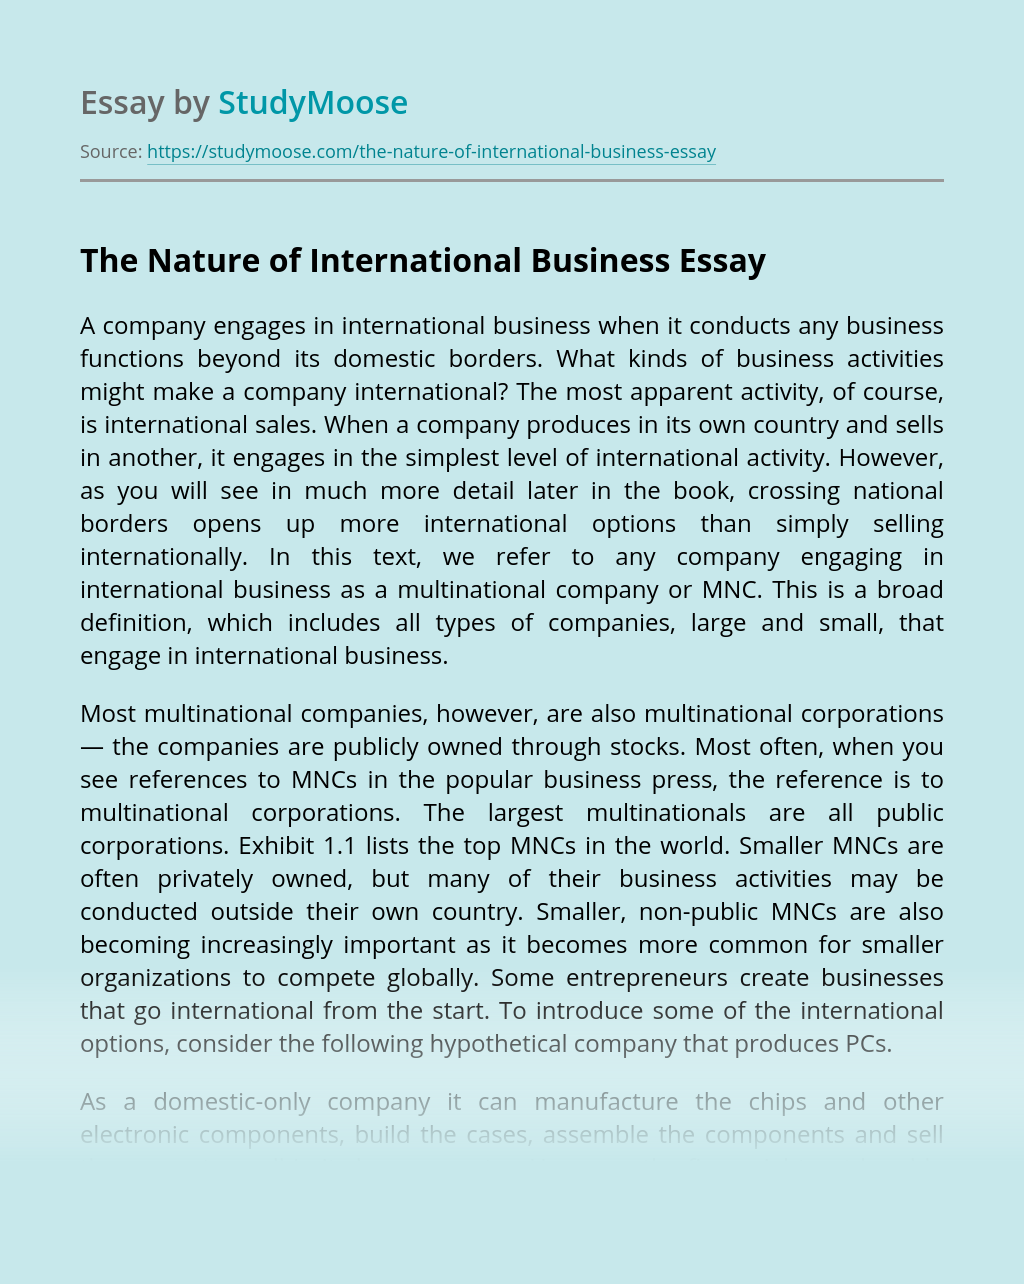 The Nature of International Business